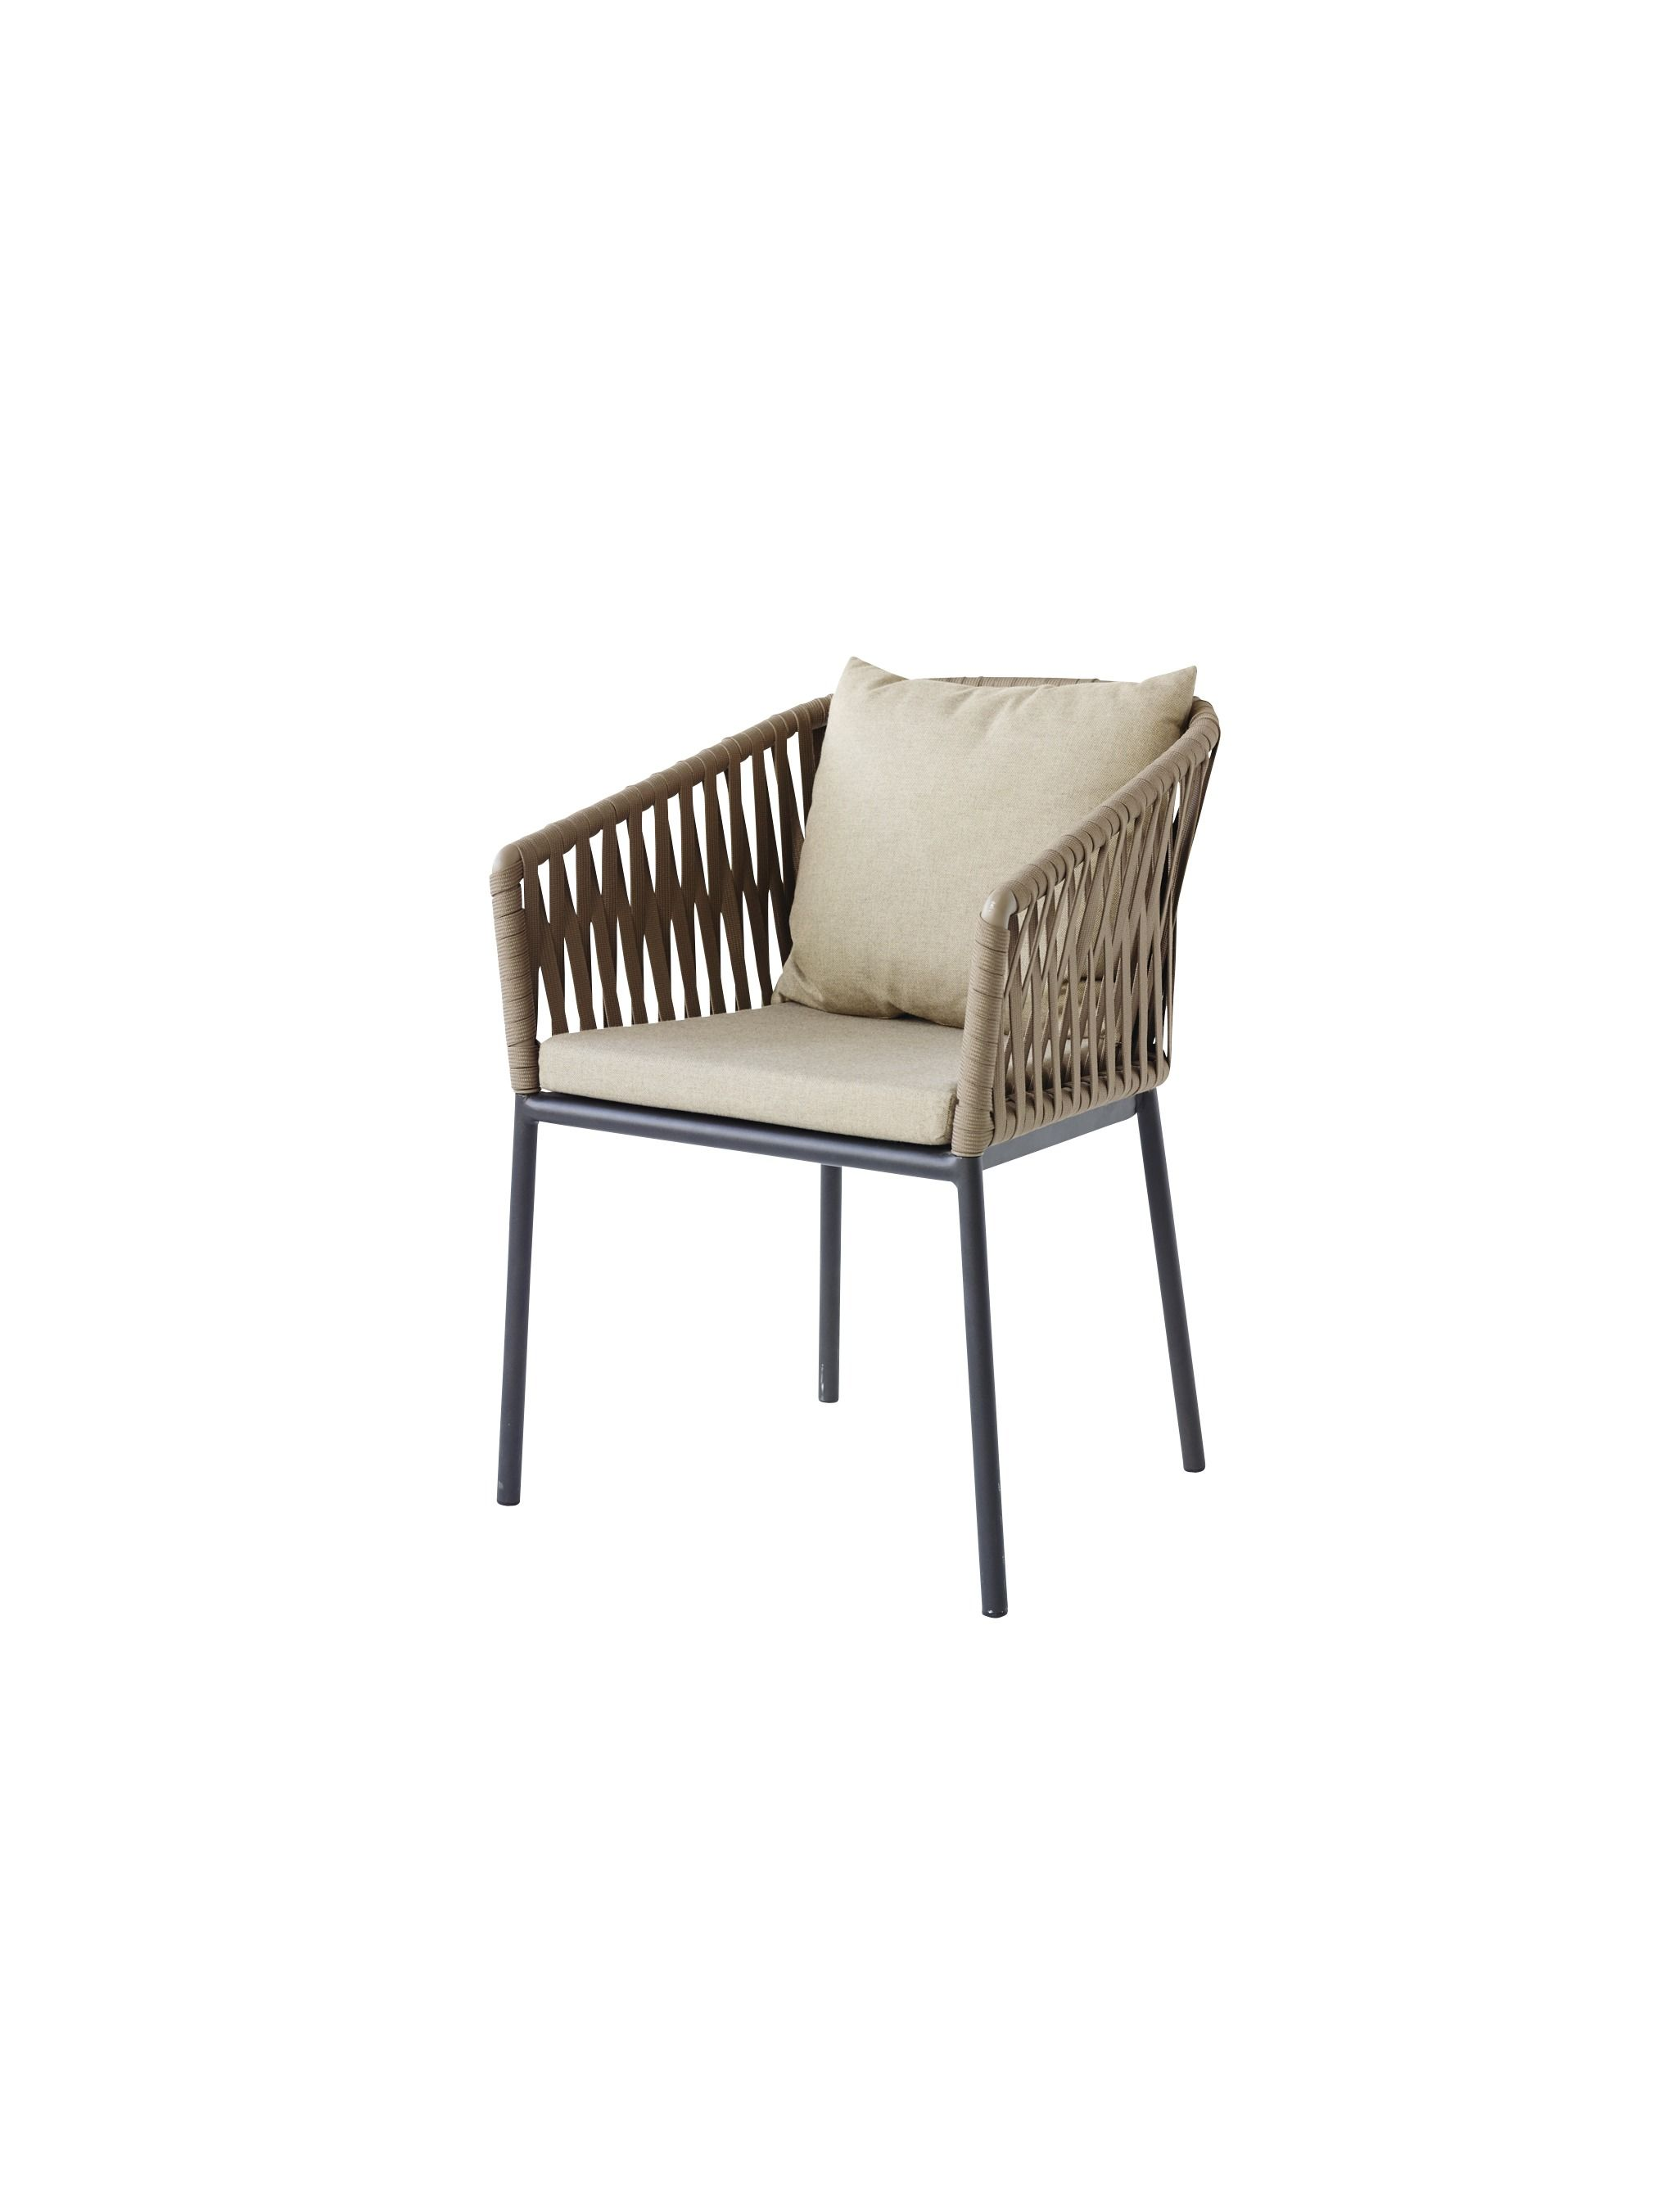 15 Outdoor Dining Chairs Patio Chairs for Outdoor Dining